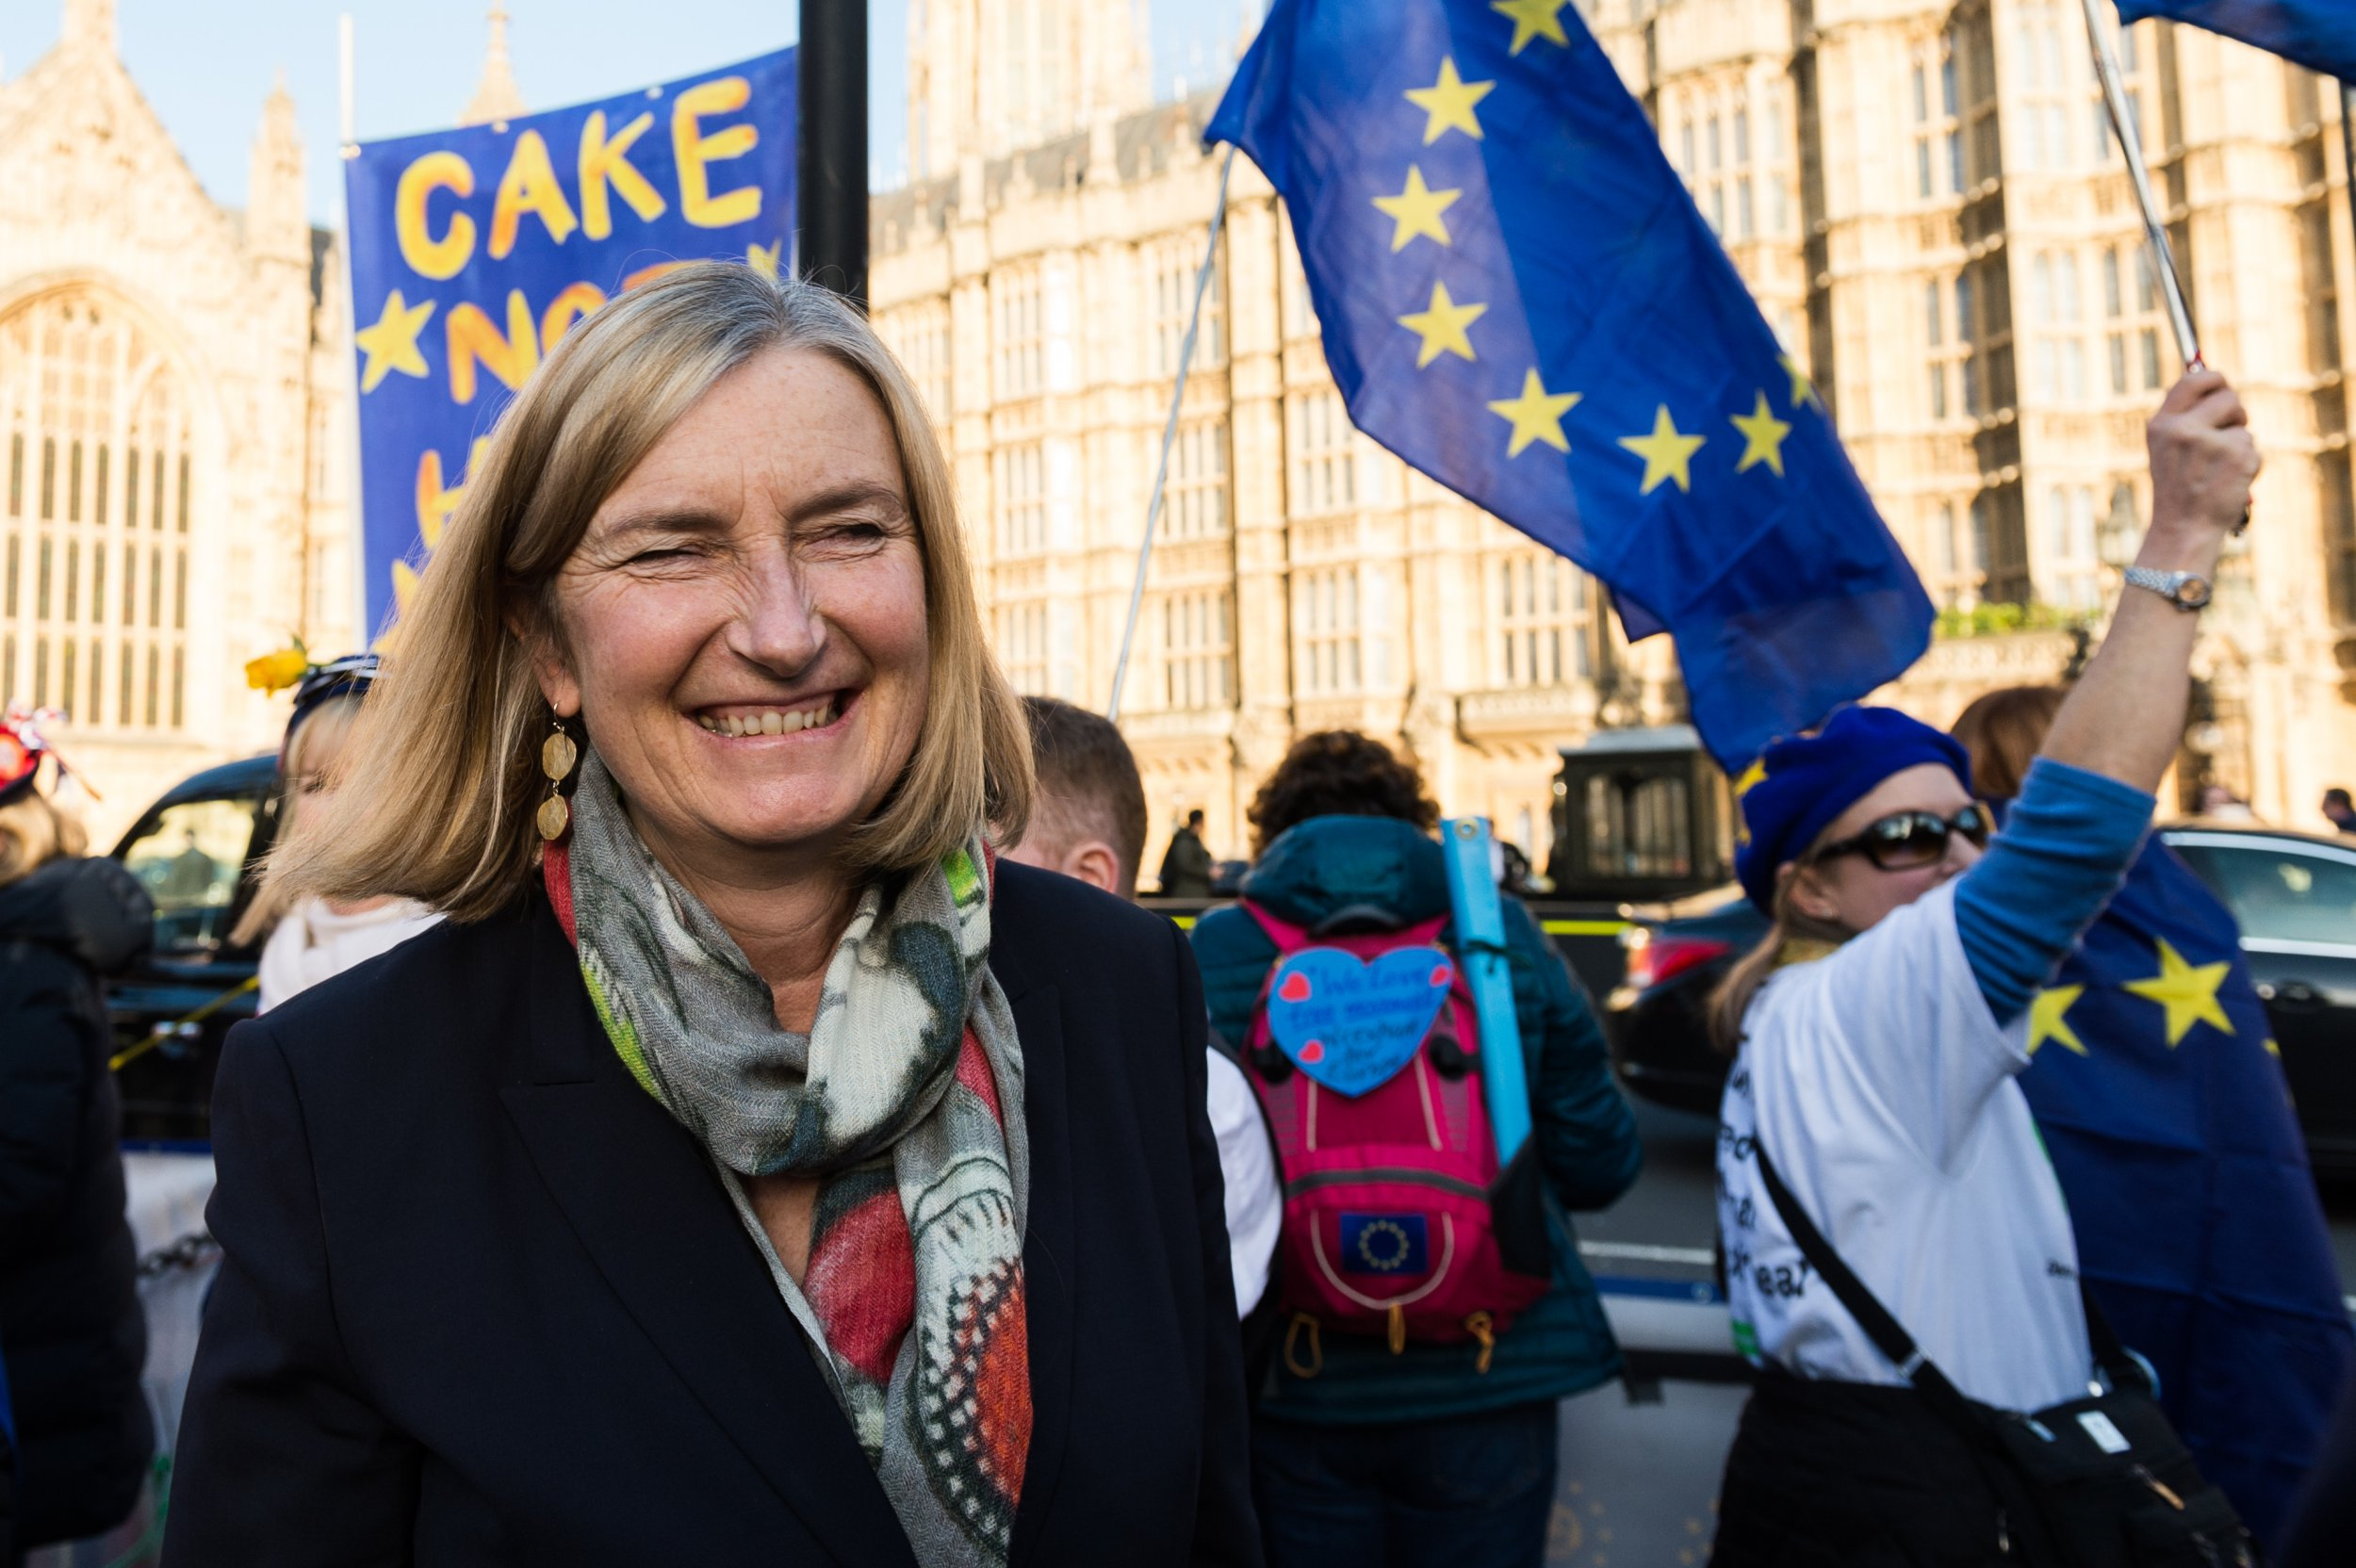 Conservative Party MP Sarah Wollaston joined anti-Brexit supporters demonstrating outside the Houses of Parliament in London on 14 February, 2019. Protesters call on MPs to get Article 50 revoked and demand a People's Vote on EU membership. Today Members of Parliament debate and vote on an amendable government motion relating to the next stage of Brexit negotiations. (Photo by WIktor Szymanowicz/NurPhoto via Getty Images)